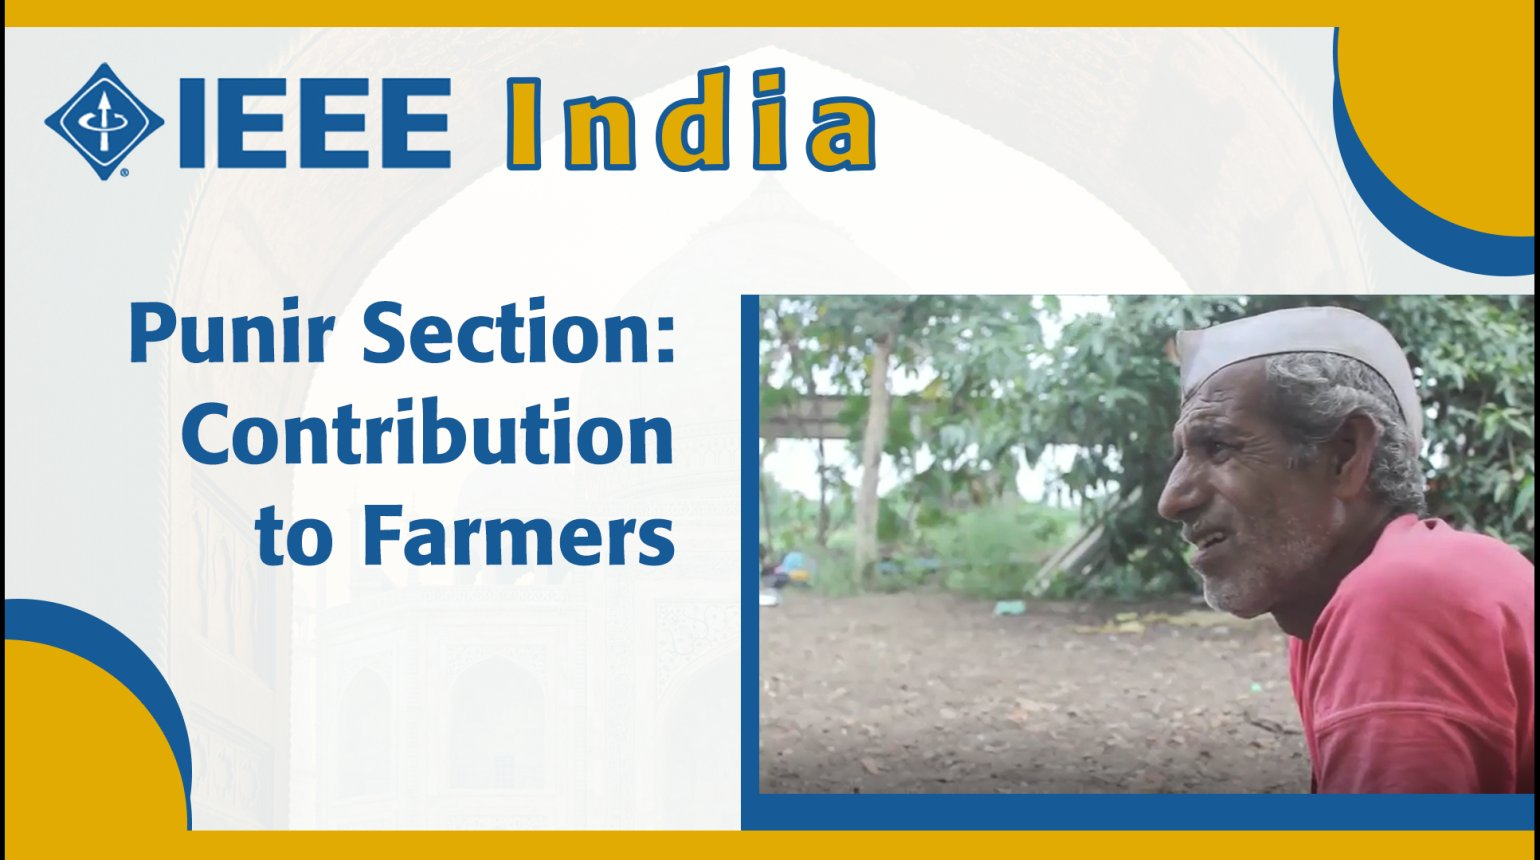 IEEE India - Pune Section: Contribution to the Farmers